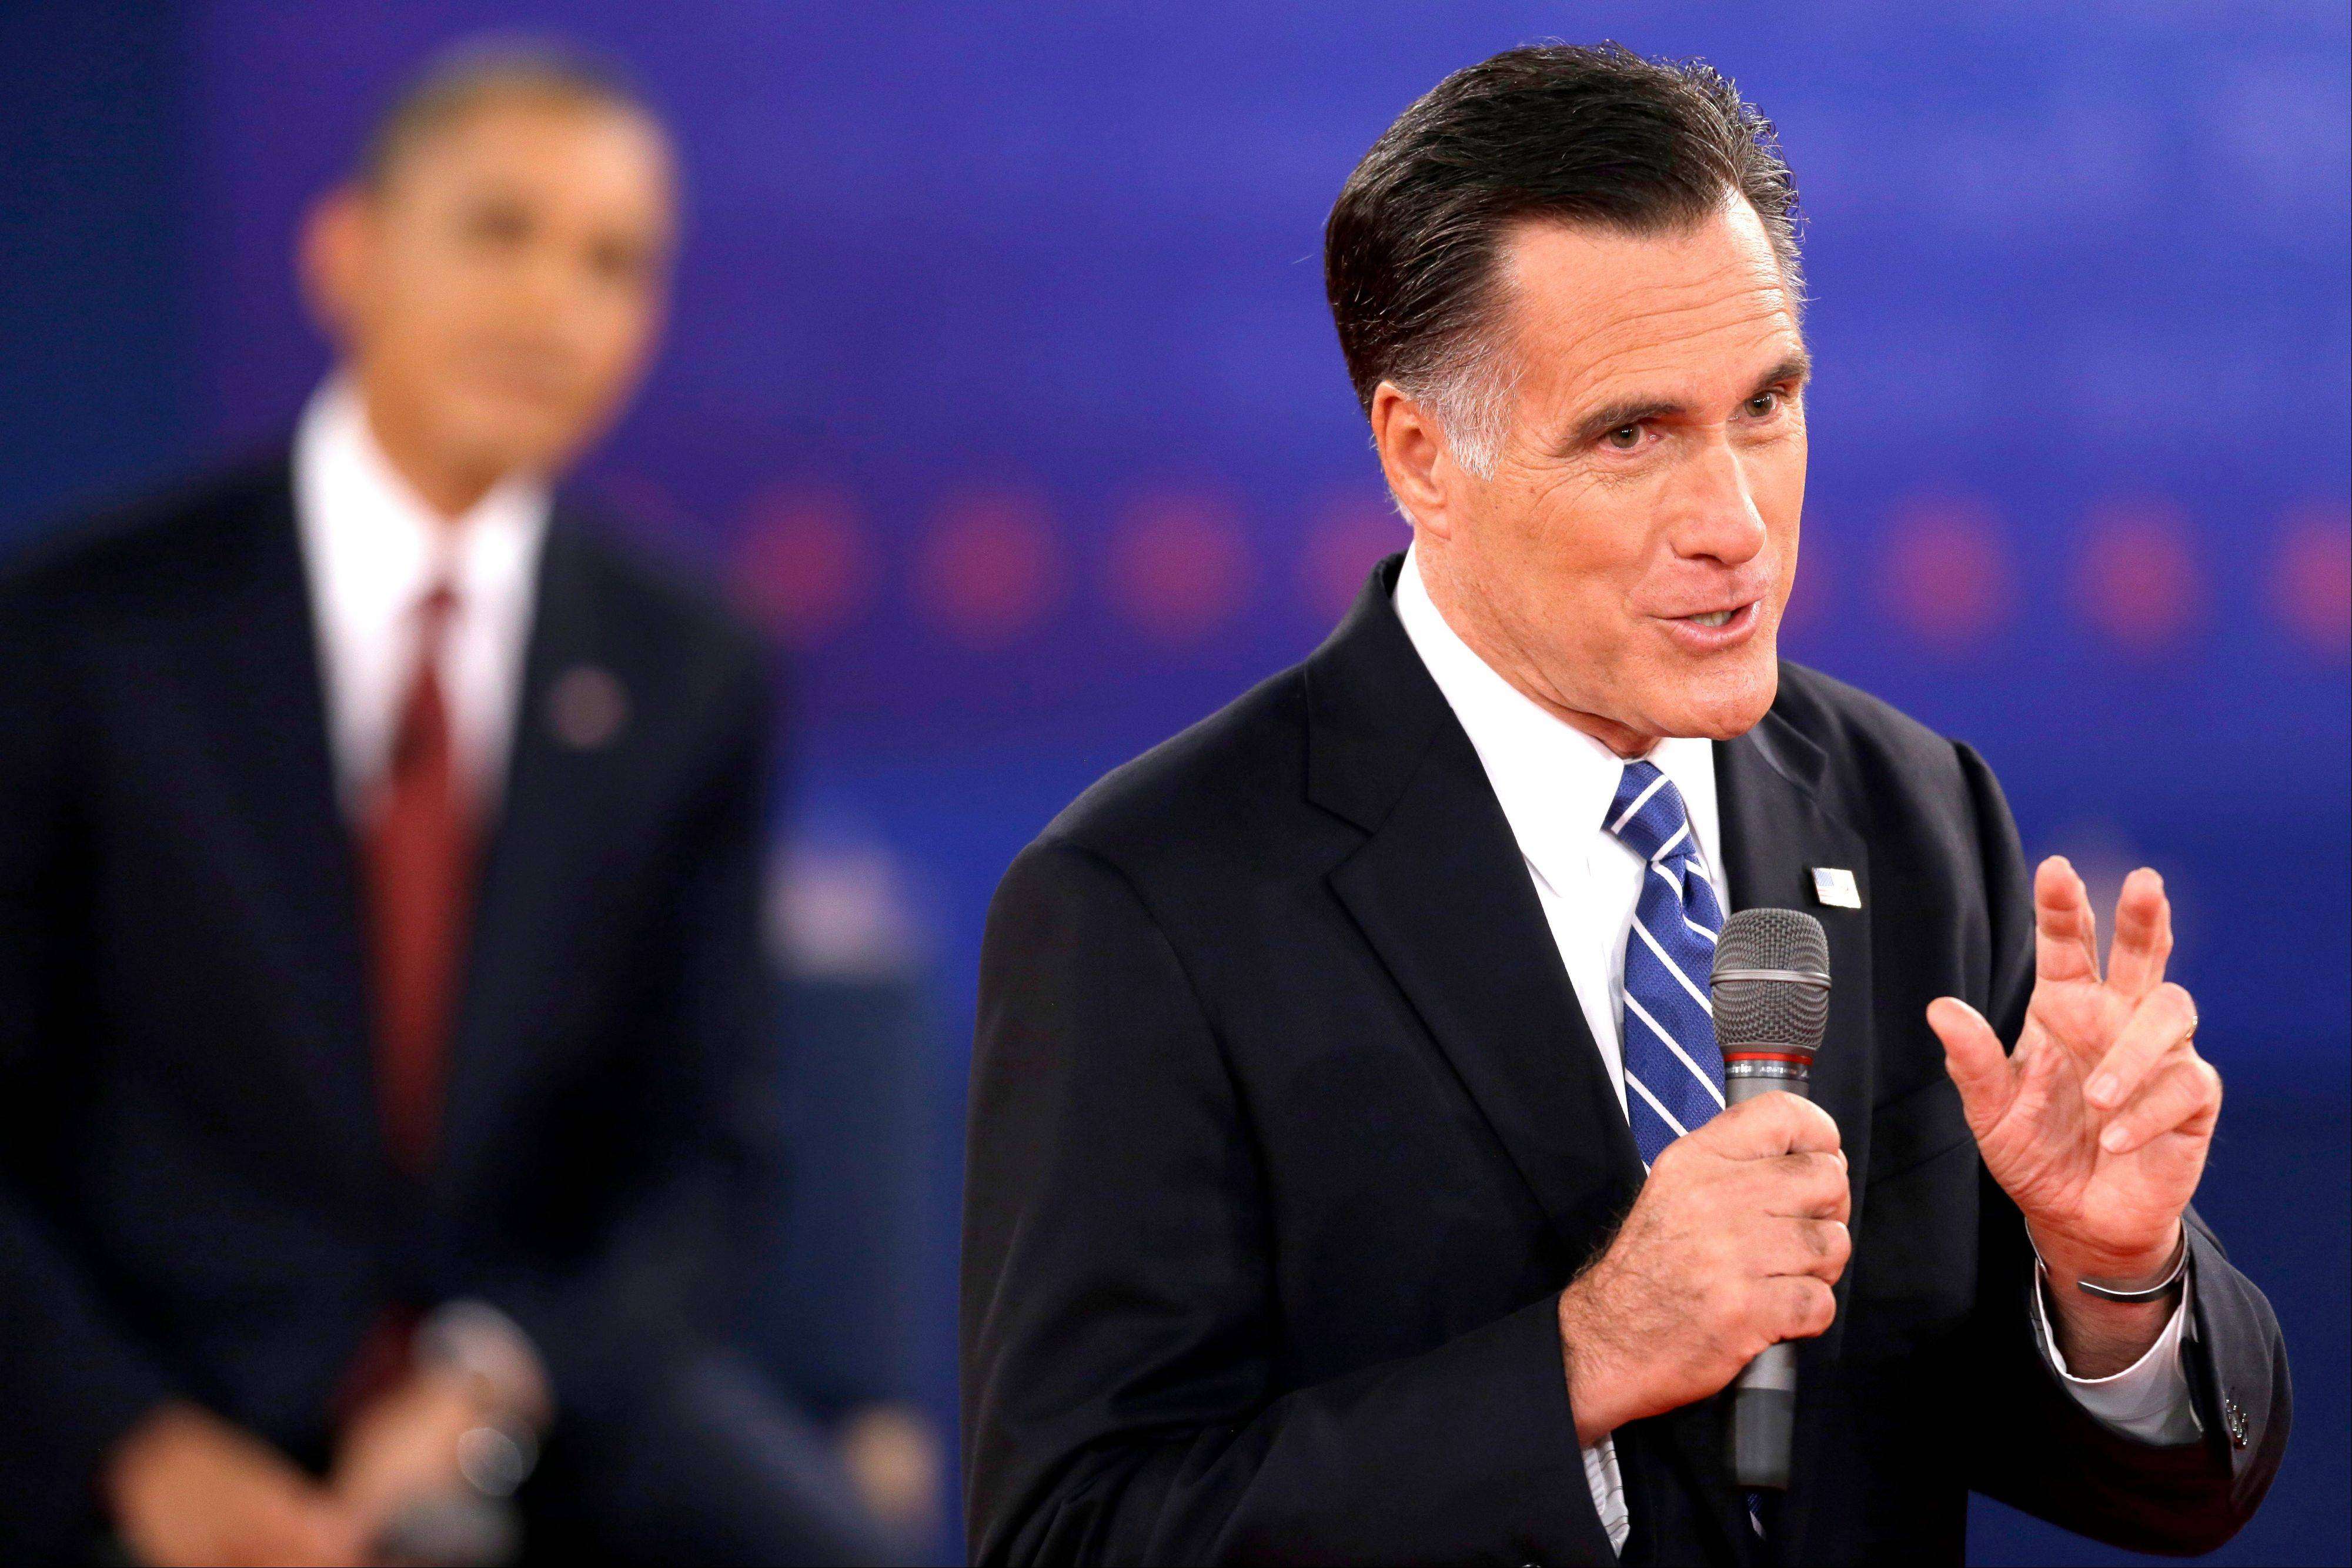 Still neck-and-neck after all these months, Barack Obama and Mitt Romney head into their third and final debate with each man eager to project an aura of personal strength and leadership while raising doubts about the steadiness and foreign policy credentials of the other guy.